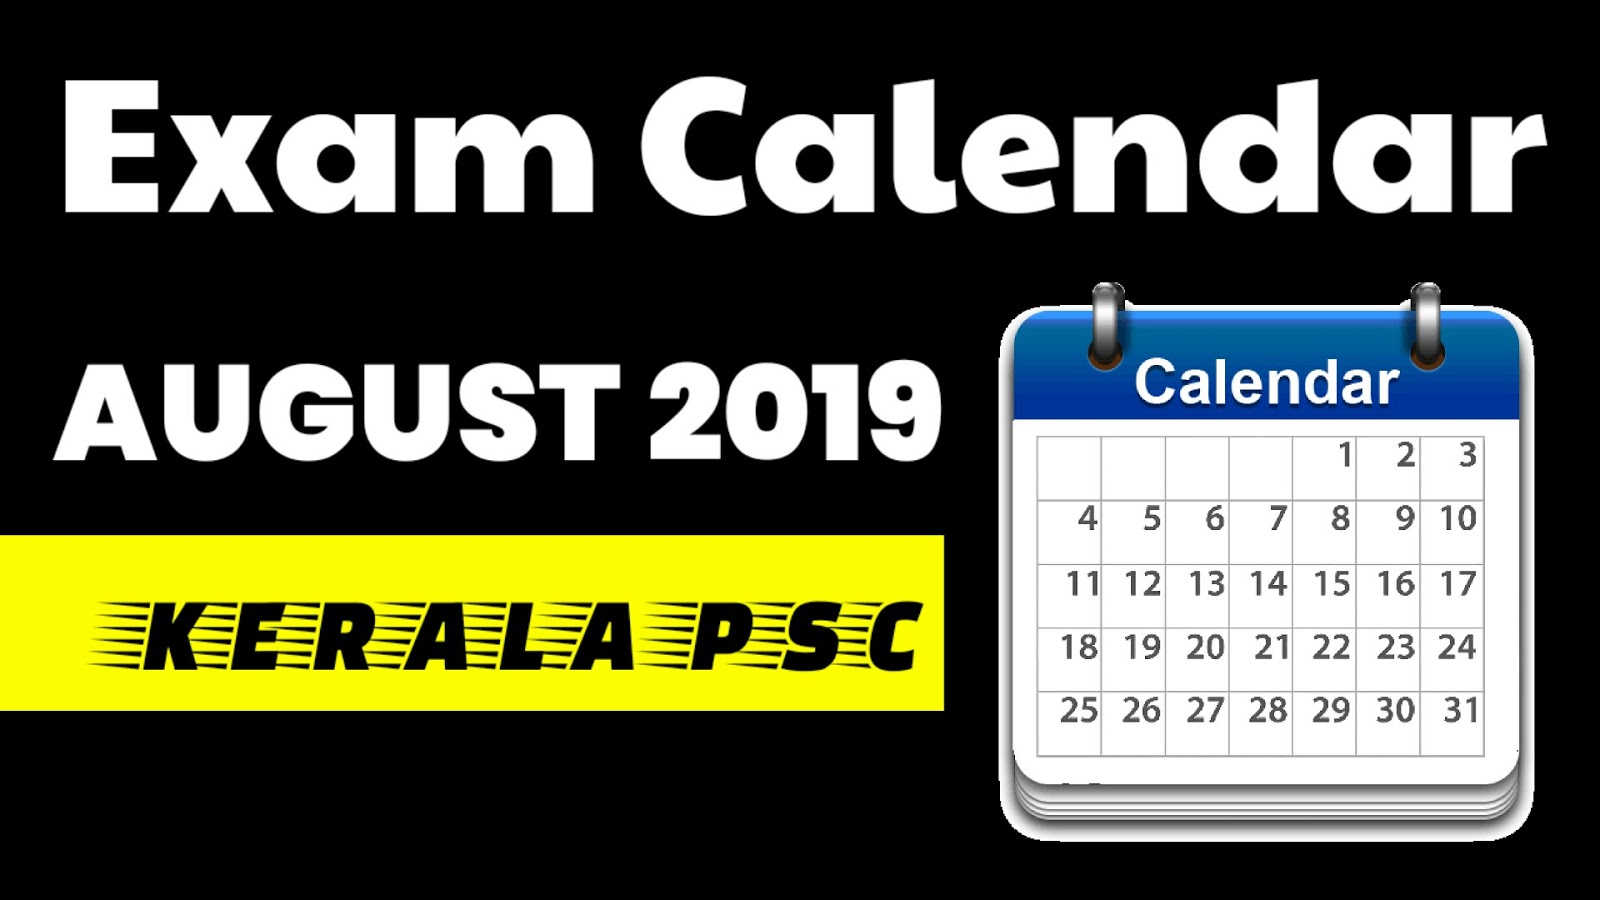 Kerala Psc Exam Calendar 2019  Psc Library intended for Kerala High Court Calendar